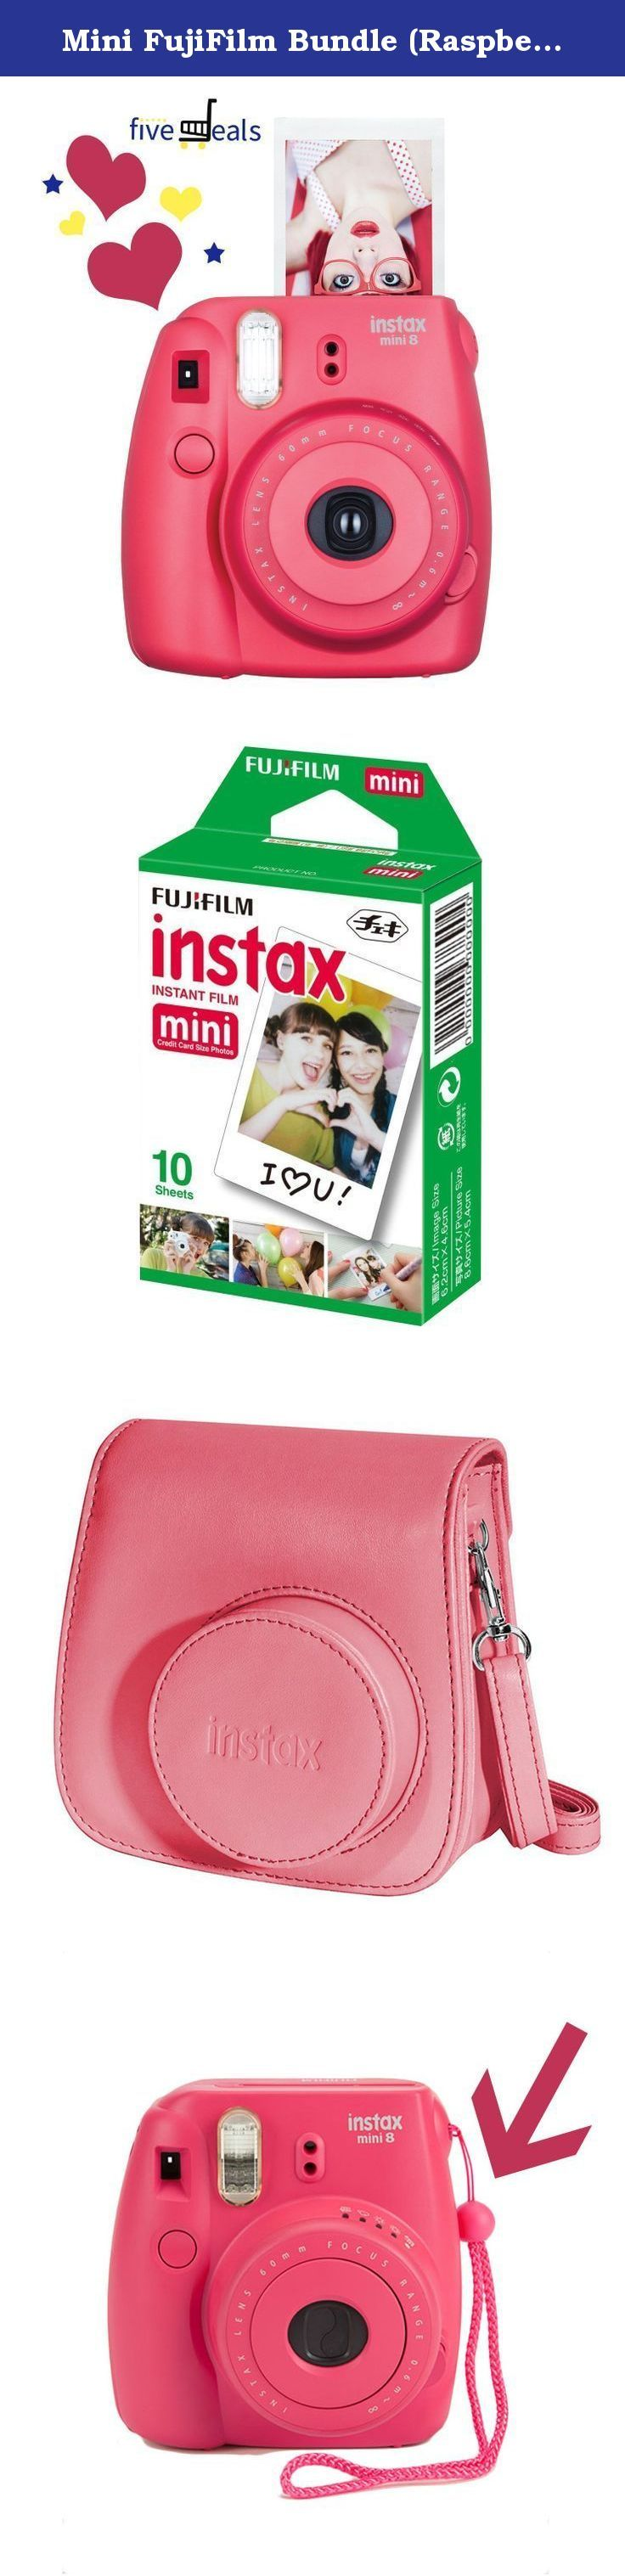 Mini FujiFilm Bundle (Raspberry). GET THE SPECIAL GIRL IN YOUR LIFE THE PERFECT GIFT WITH THIS 3-IN-1 FUJIFILM CAMERA, CASE AND FILM SET! THE PINK FUJIFILM INSTAX MINI 8 INSTANT FILM CAMERA Cute to boot in this pretty pink color this FujfiFilm instant camera is made for that special girl in your life! It's very slim and easy to grip so she won't have problems in holding it as she snaps away at capturing her happiest moments! With its slim design she can easily fit this camera into her bag…